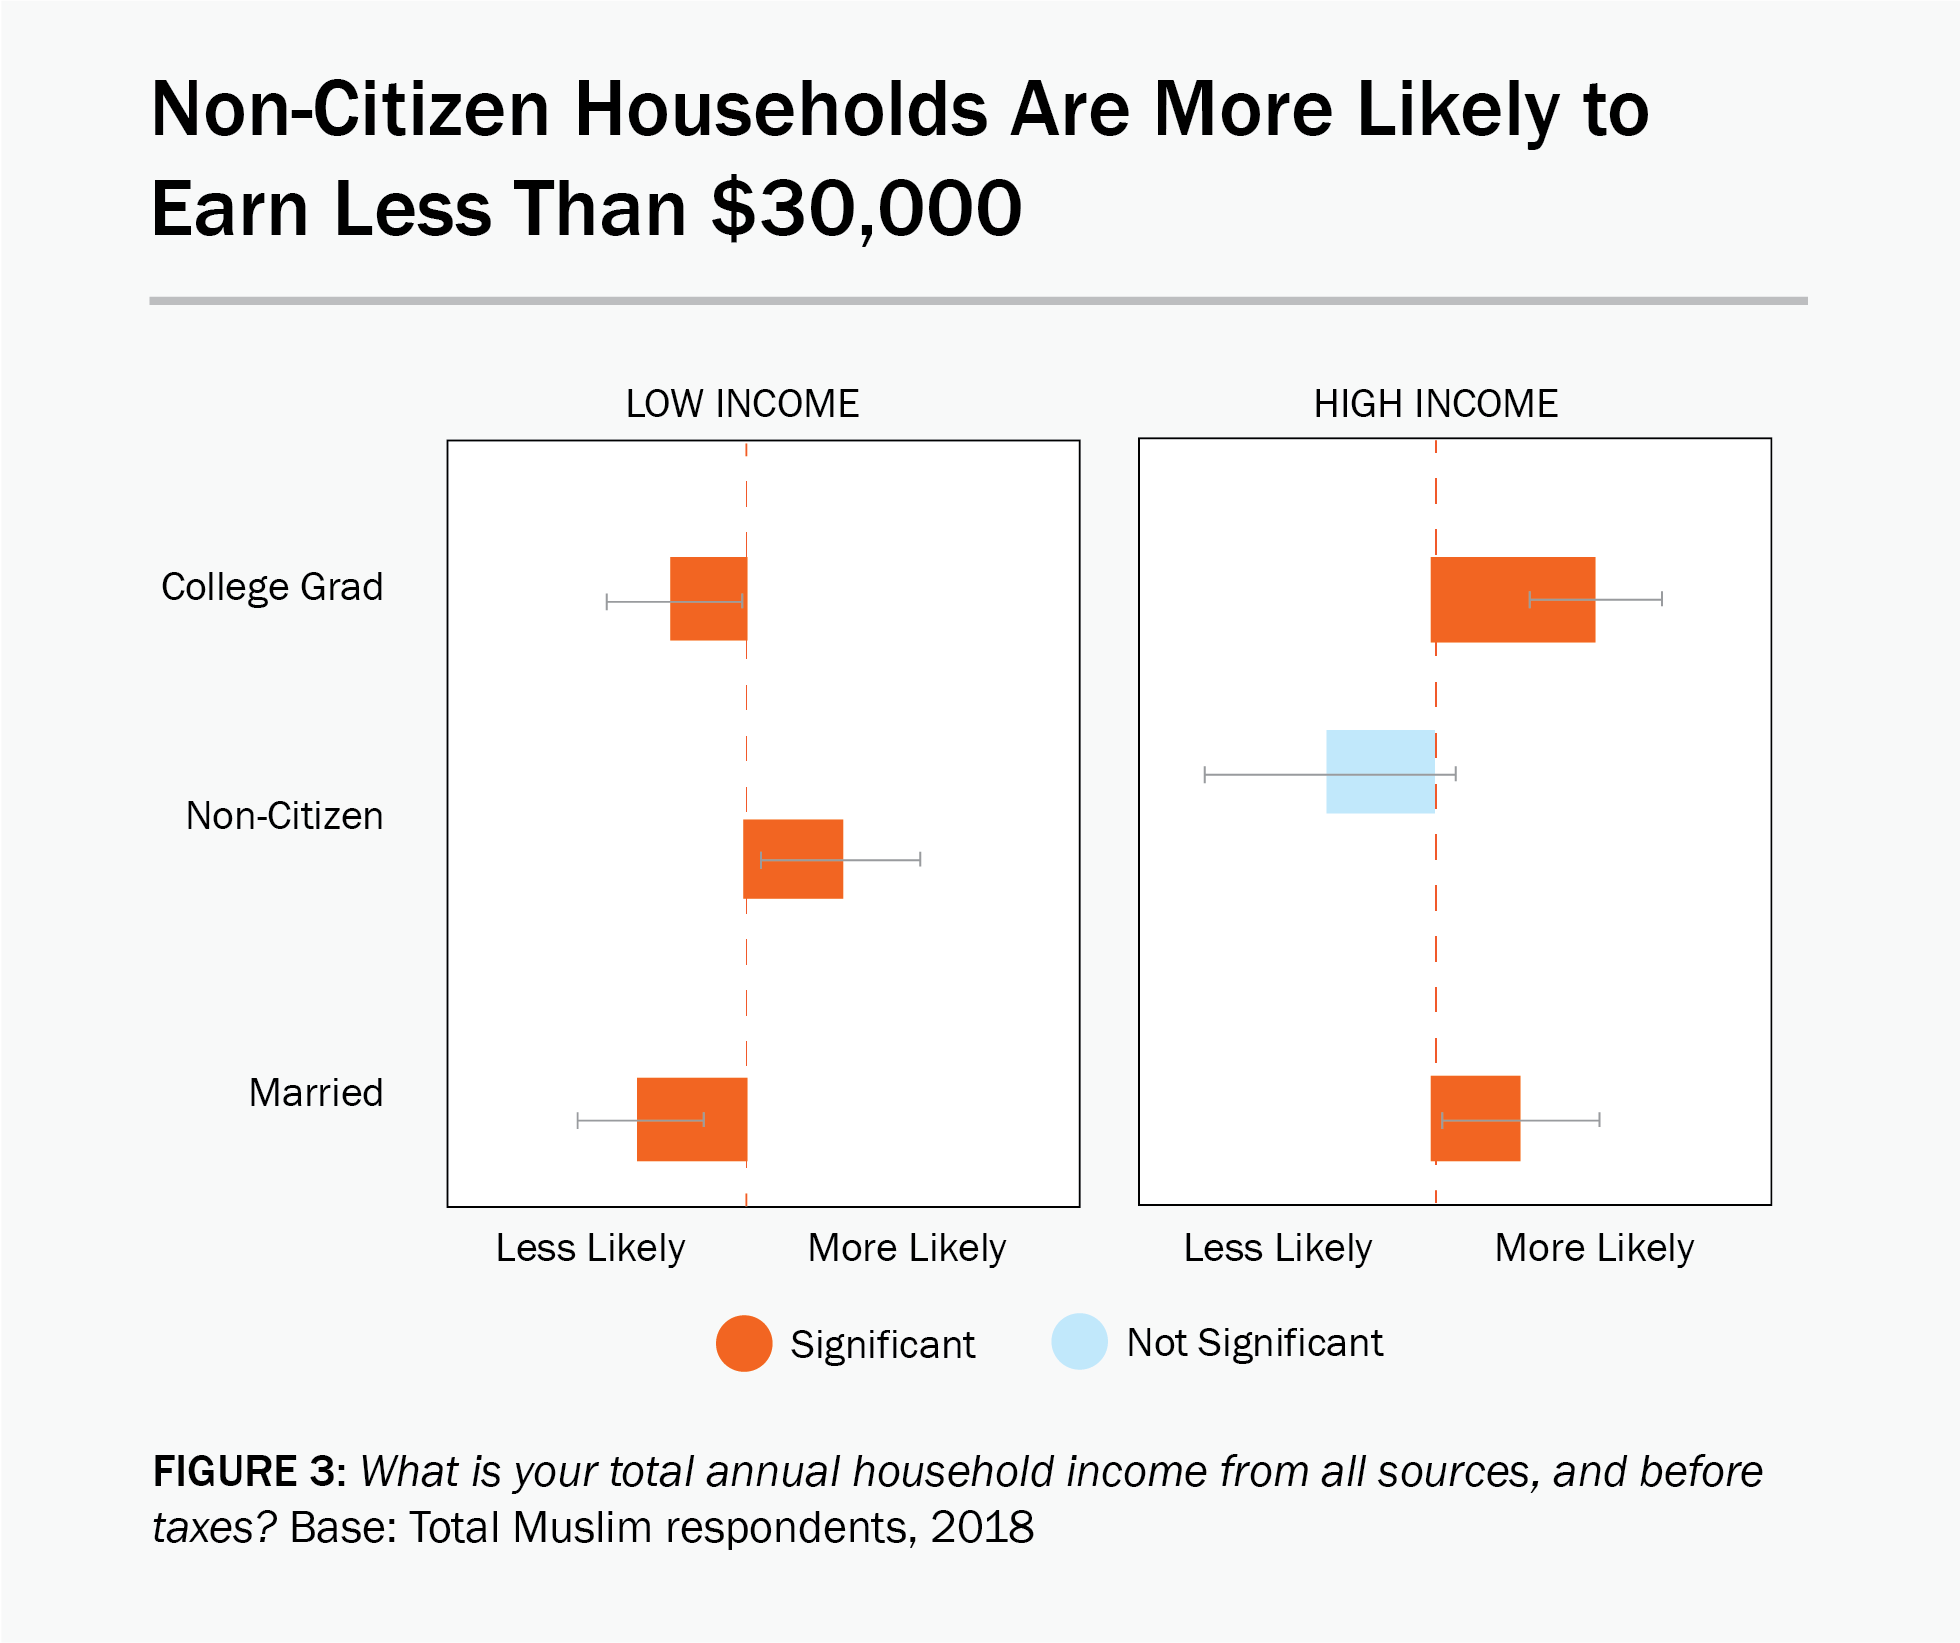 Figure 2: A data chart showing that non-citizen households are more likely to earn less than $30,000